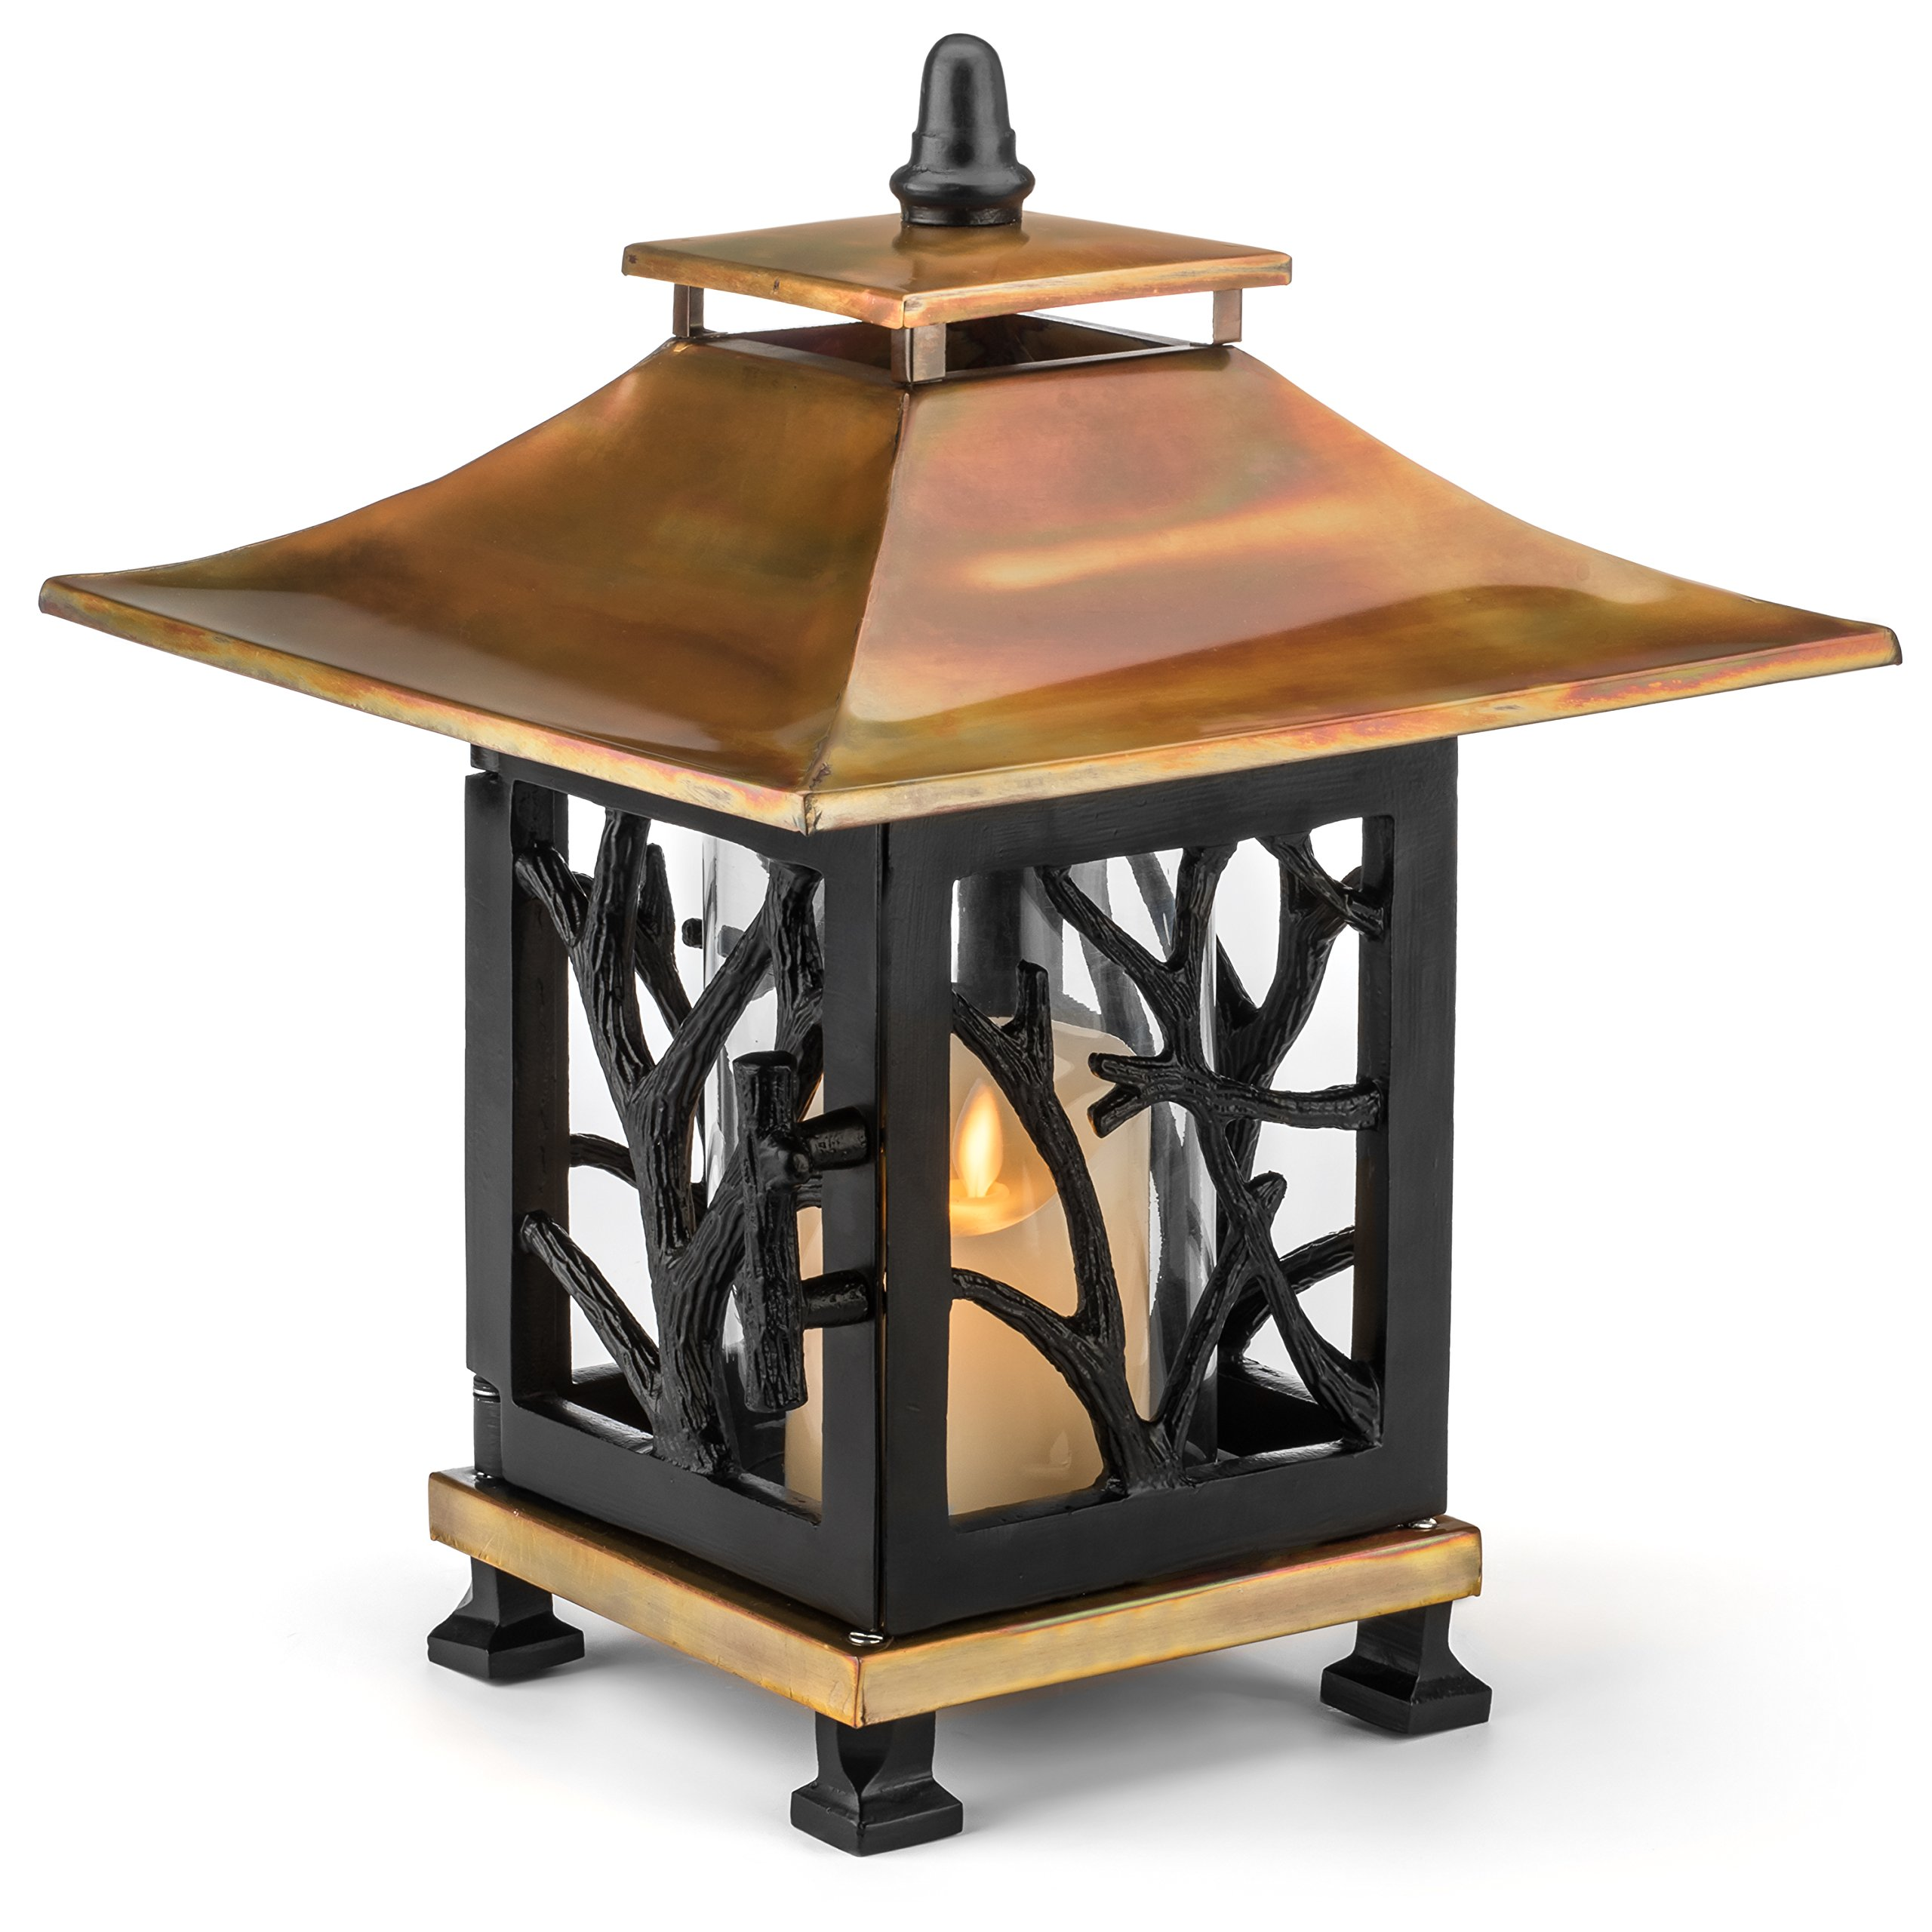 H Potter Decorative Candle Lantern Outdoor Indoor for Patio Deck Balcony Terrace Tabletop